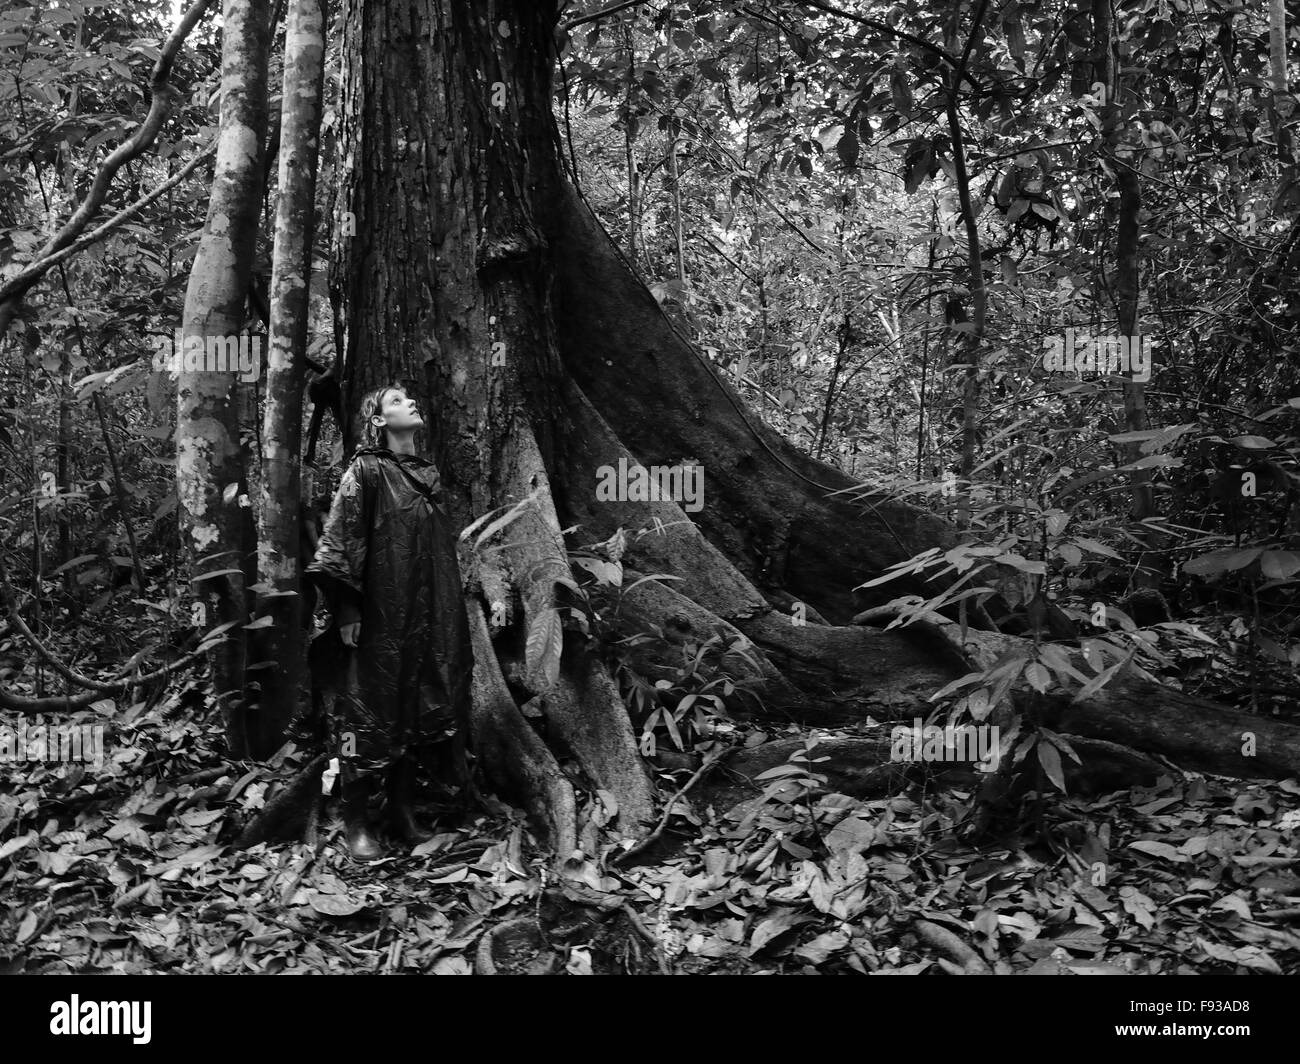 A girl in the Borneo's Rain forest - Stock Image